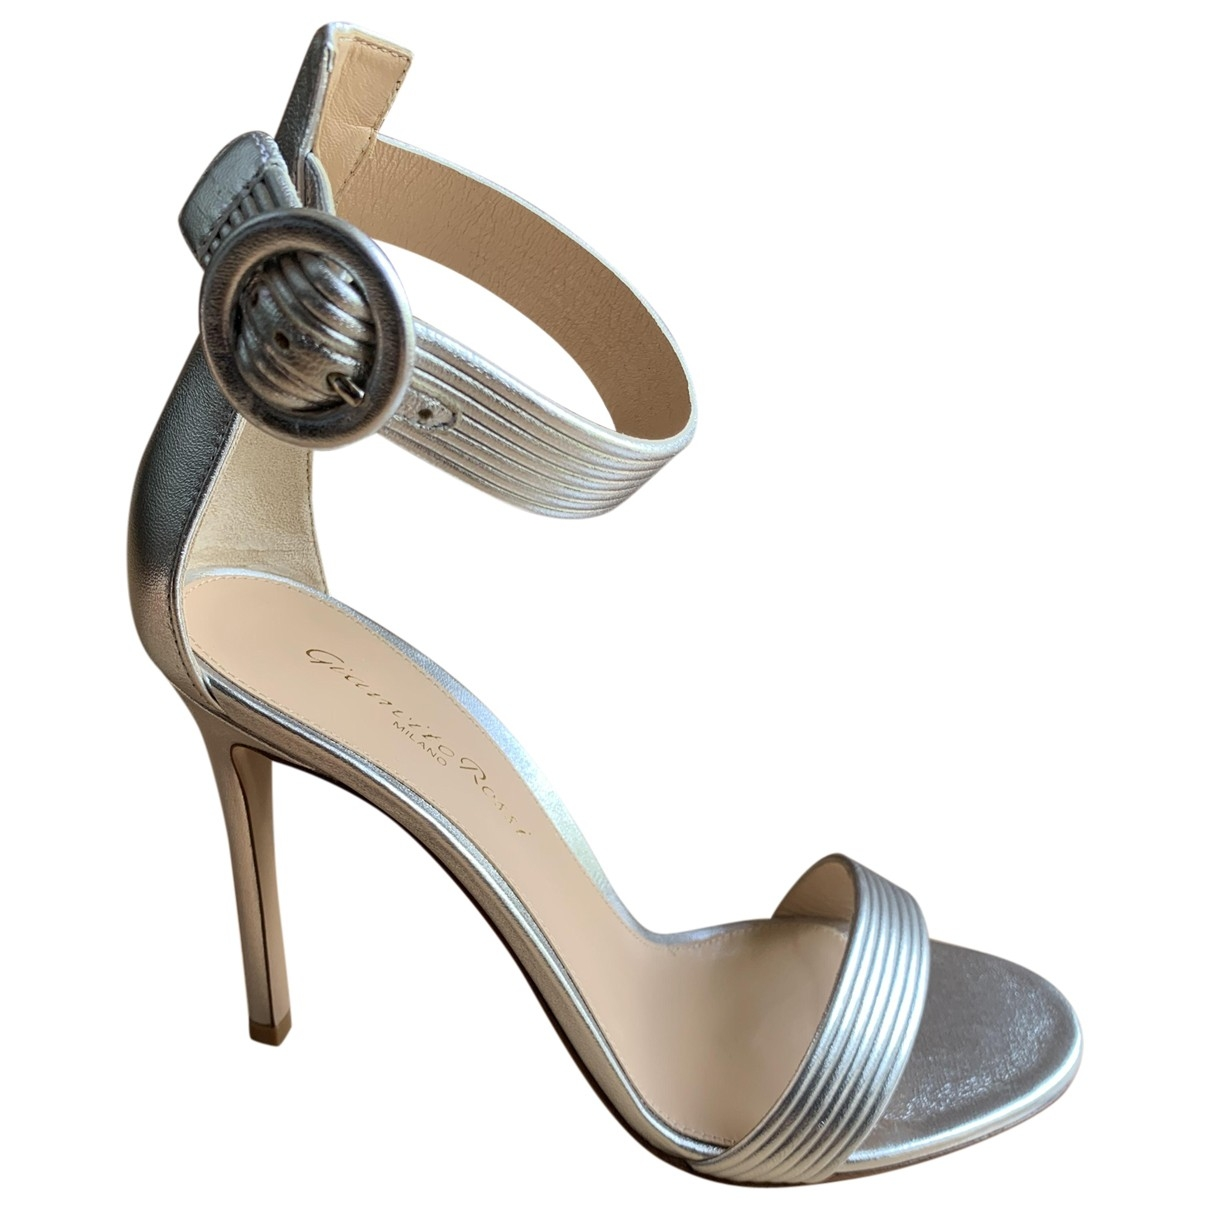 Gianvito Rossi Portofino Silver Leather Sandals for Women 37 EU